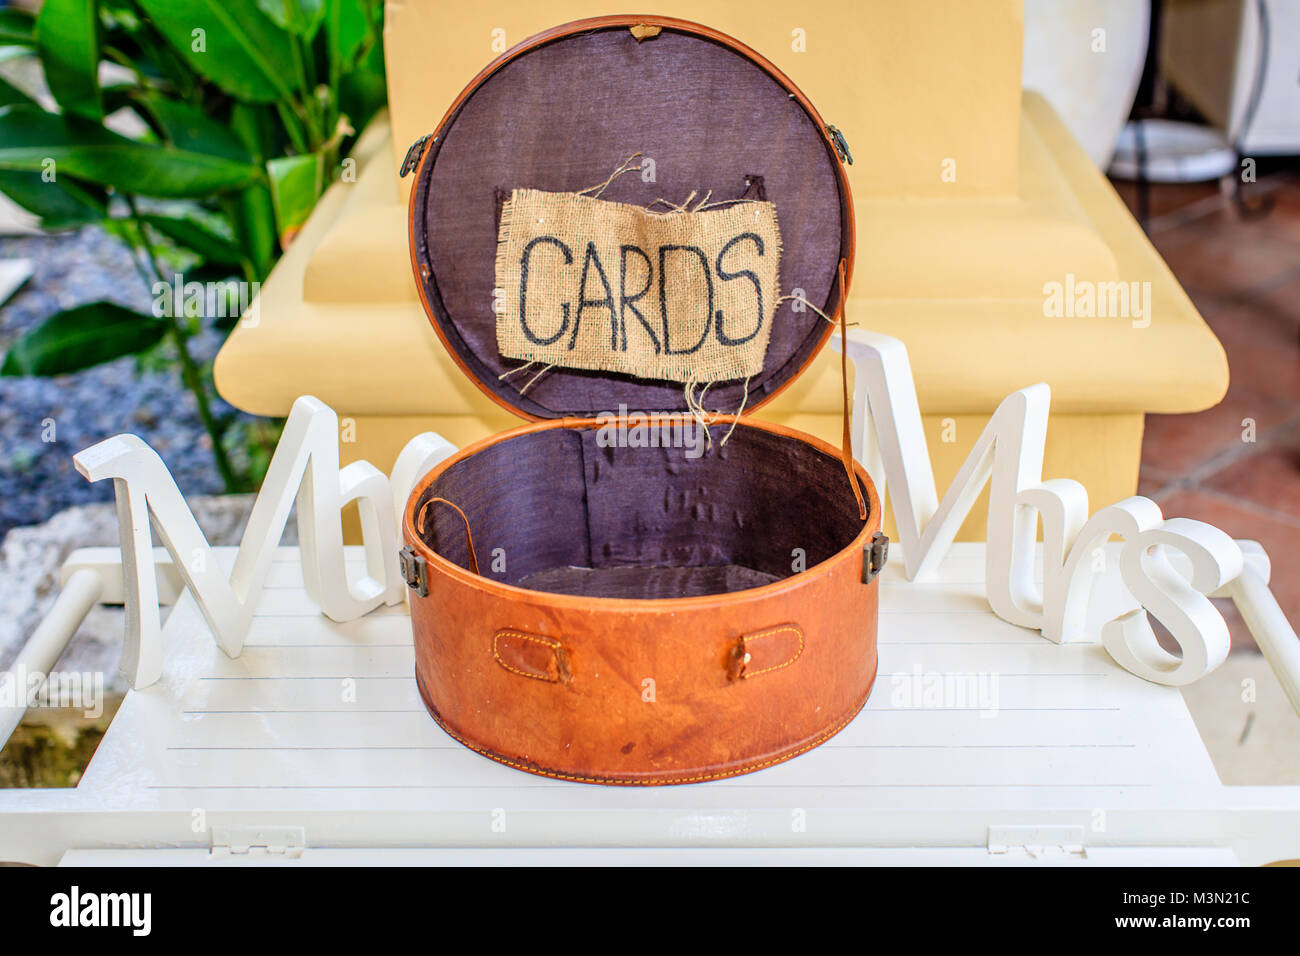 Round brown leather box for cards, white wooden words Mr and Mrs on the sides. Wedding props. - Stock Image